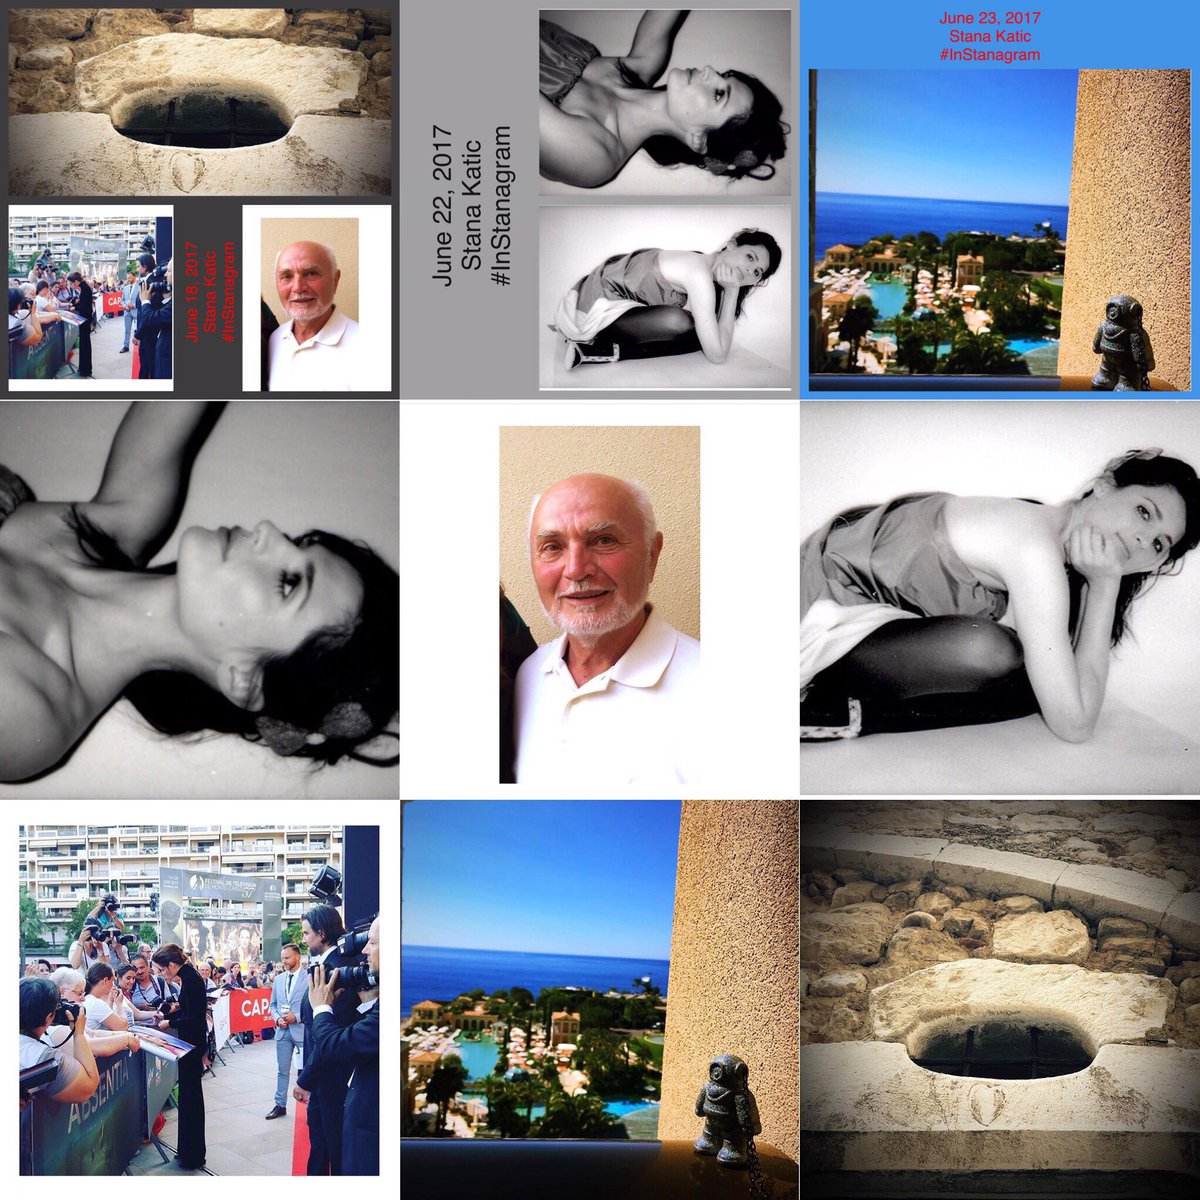 #StanaKatic rewind SK gave us 6 fabulous fotos &amp; 1 video on #InStanagram then she hit Facebook &amp; Twitter for the week of June 18 -24 TY SK <br>http://pic.twitter.com/hEyEzF33kY